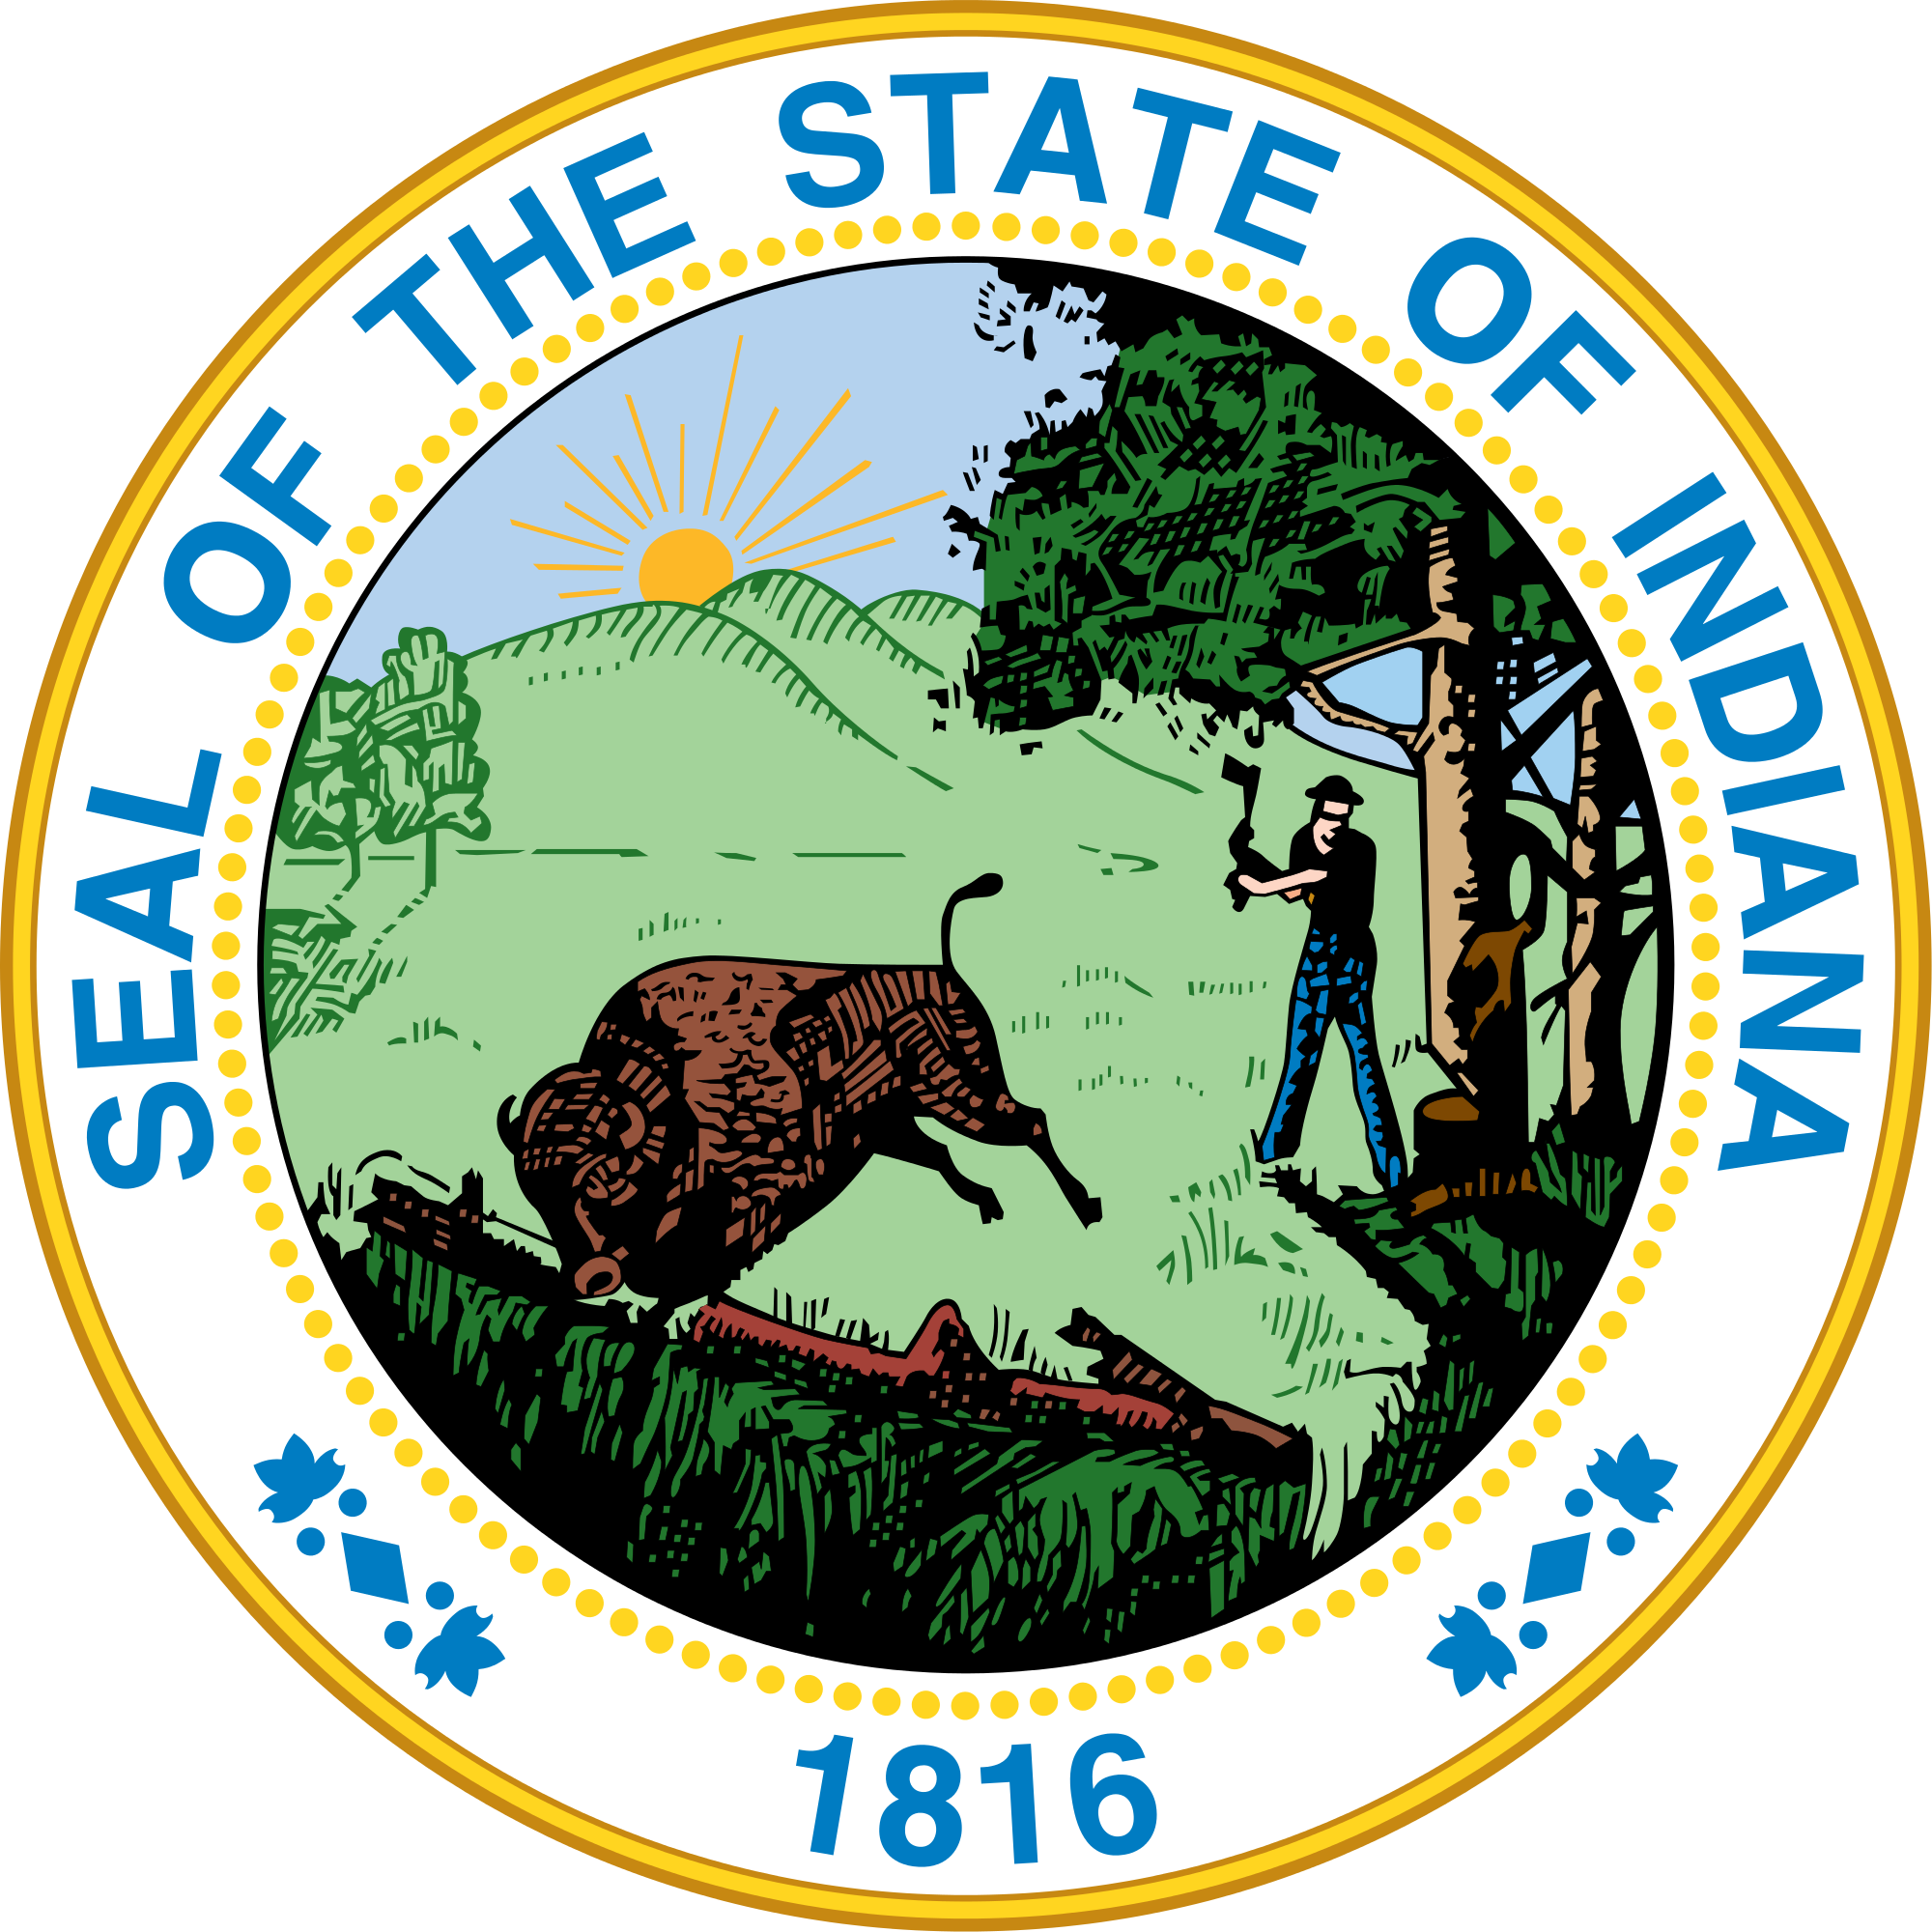 Seal of the Great State of Indiana